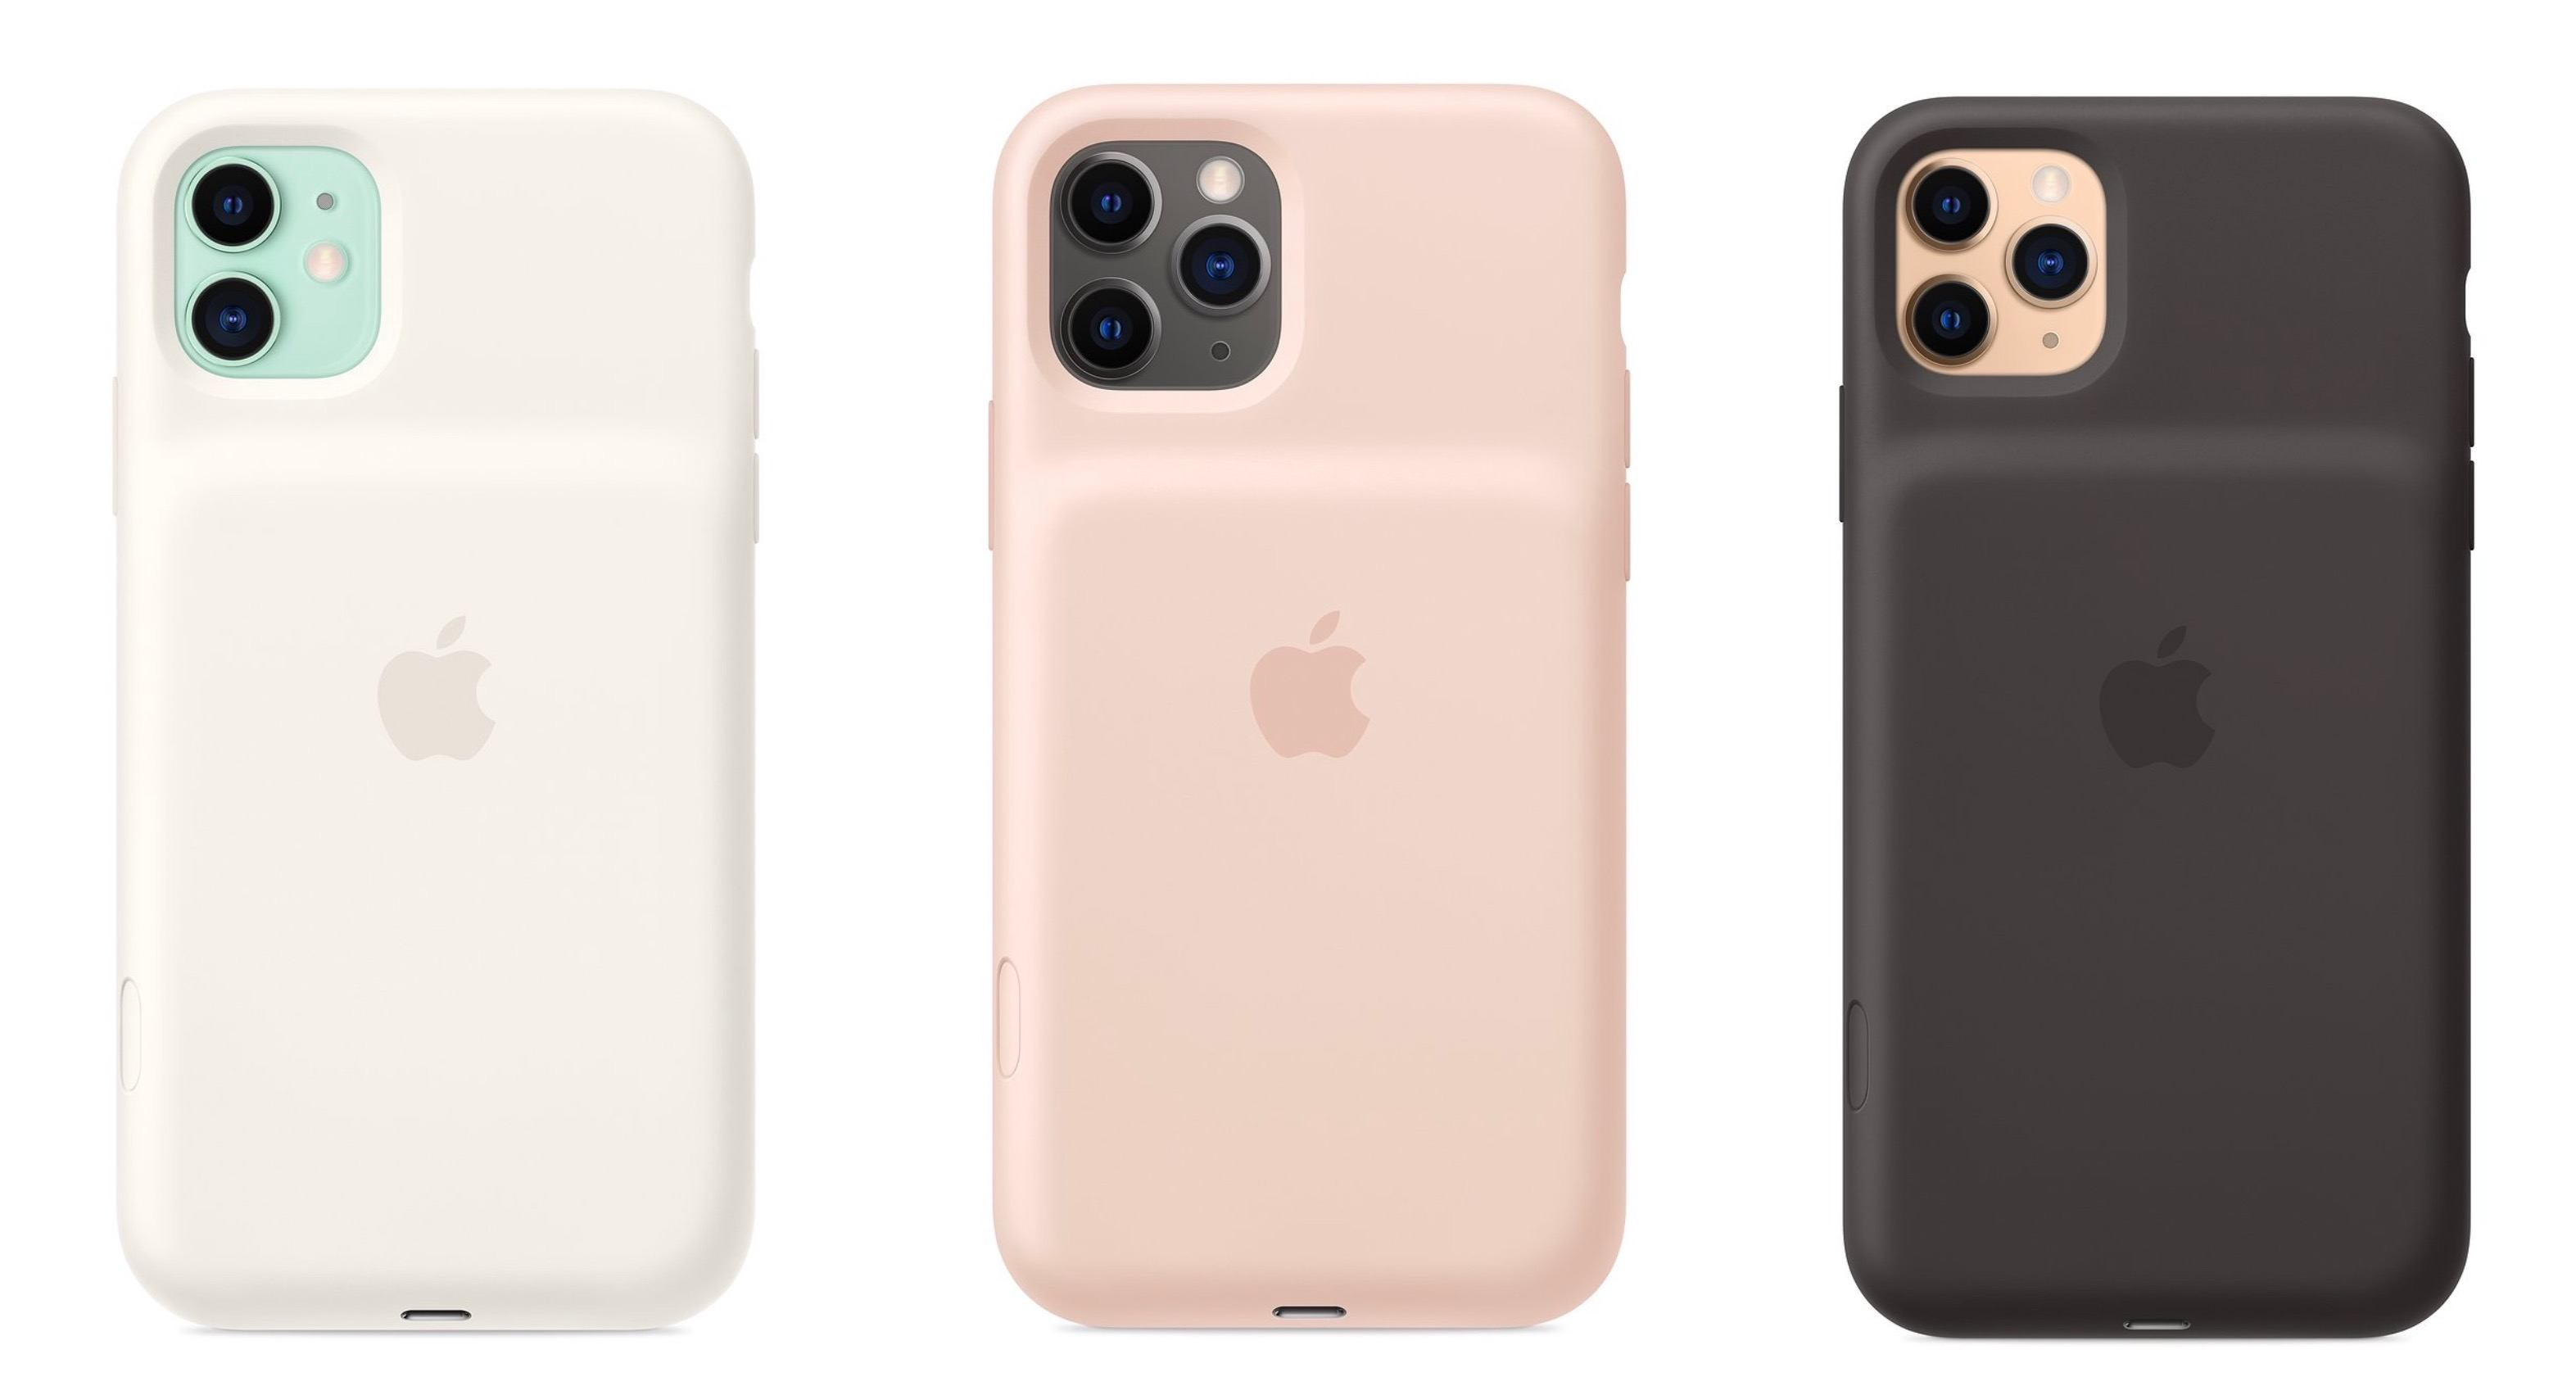 Apple Smart Battery Case for iPhone 11 packs new camera button